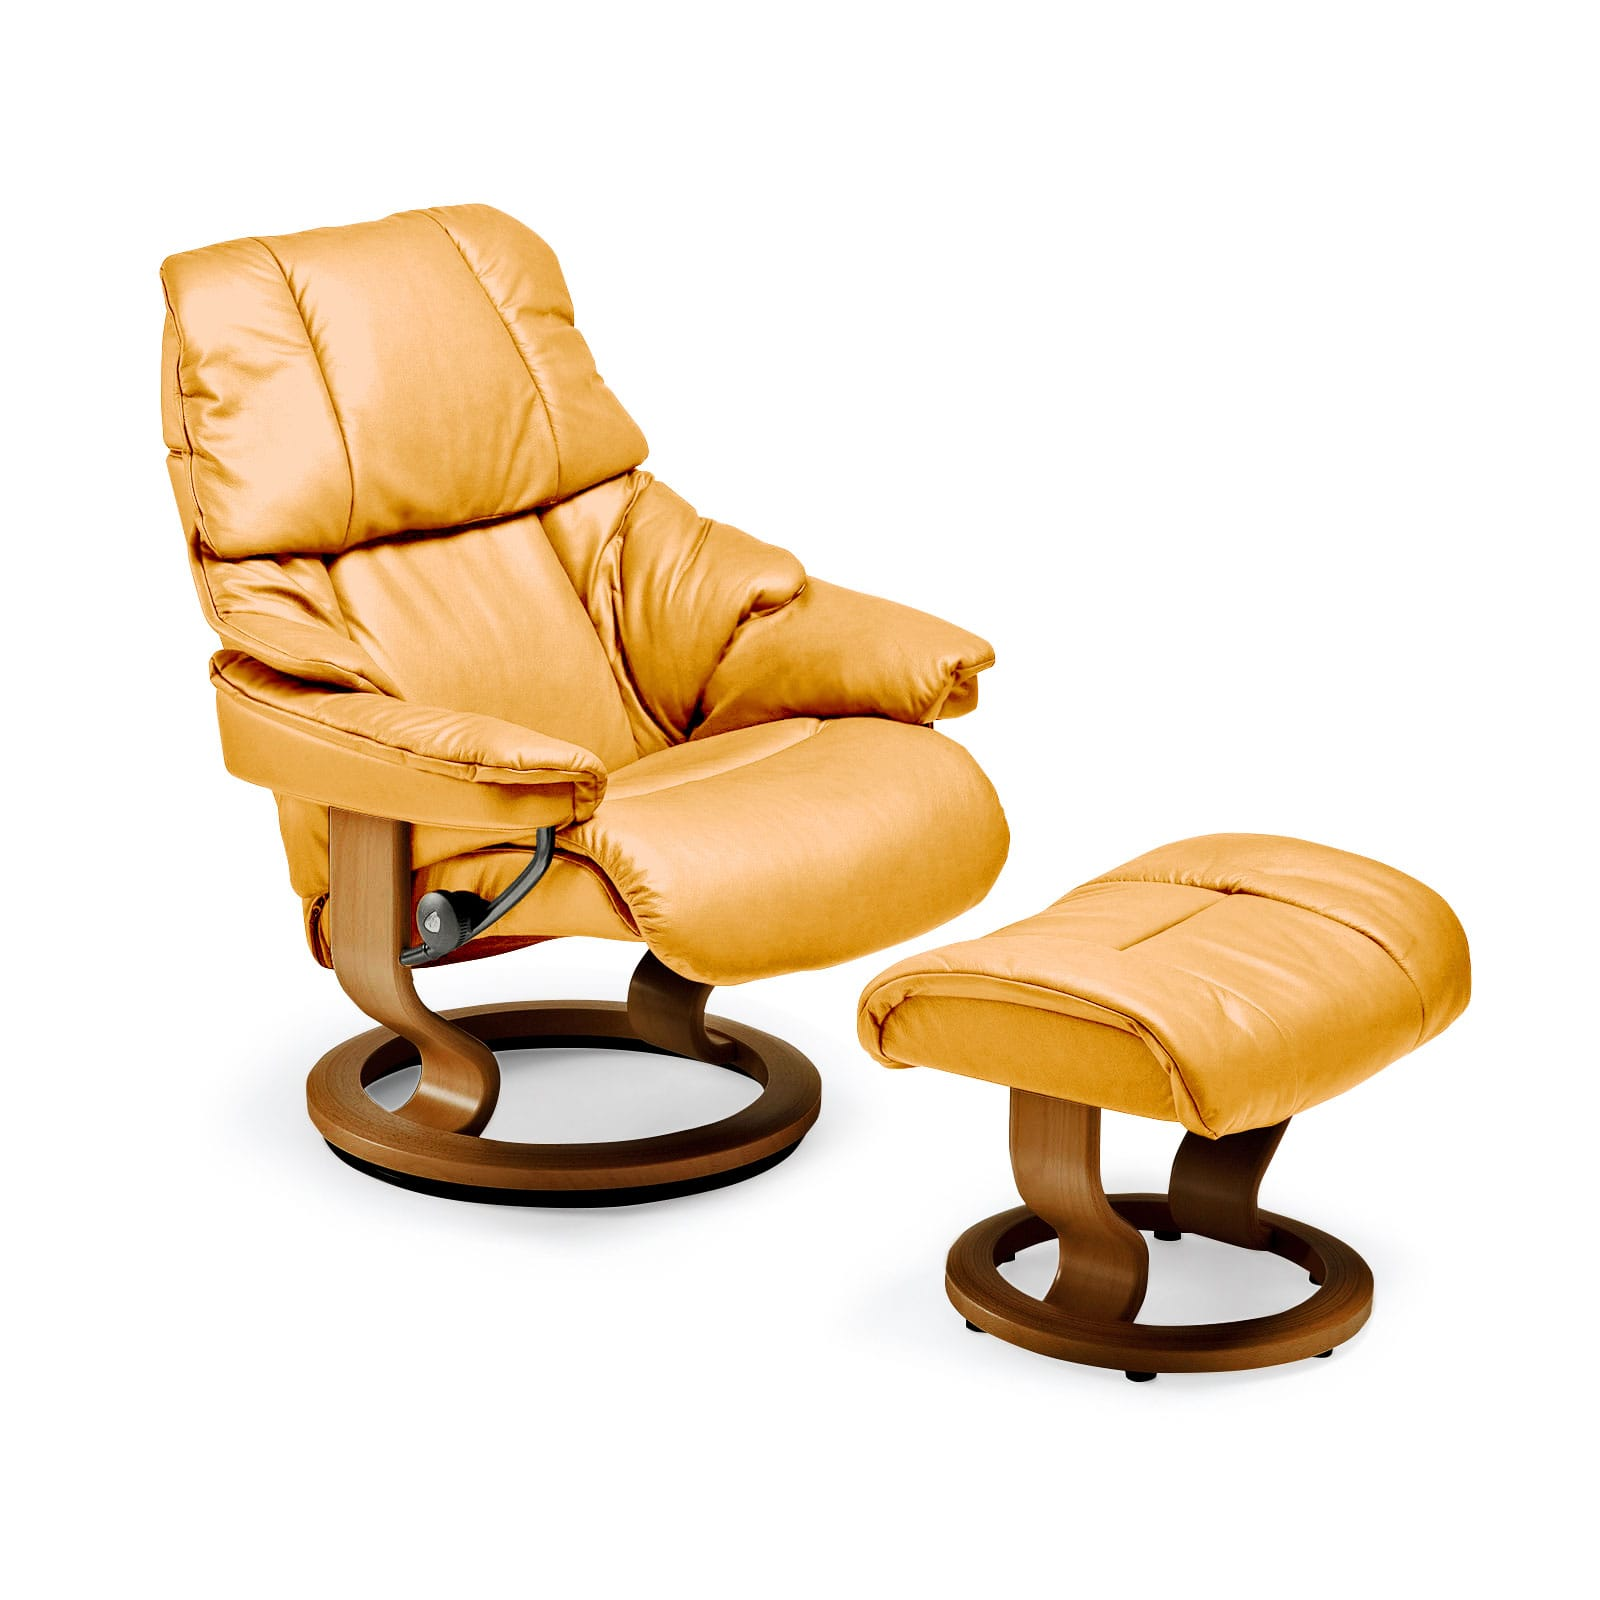 Stressless Kika Stressless Sessel Alternative Stressless Onlineshop Sessel